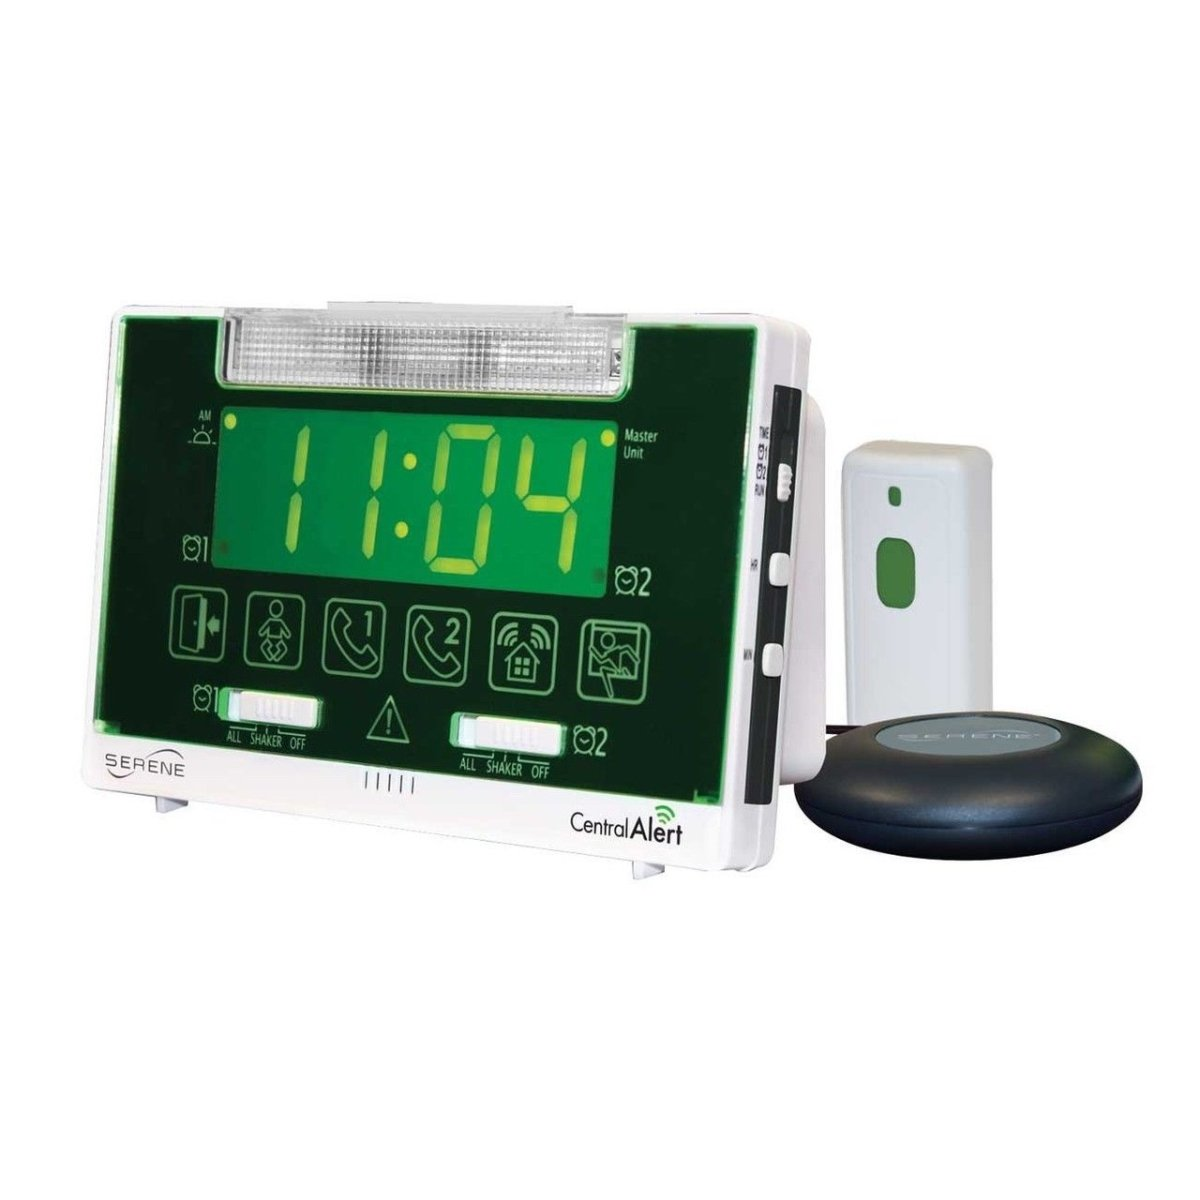 Serene Innovations Centralalert Notification System Ca360h Vibrating Alarm Clock/receiver with Hanging Door Knock Sensor for Deaf or Hearing Loss Impaired Disabled